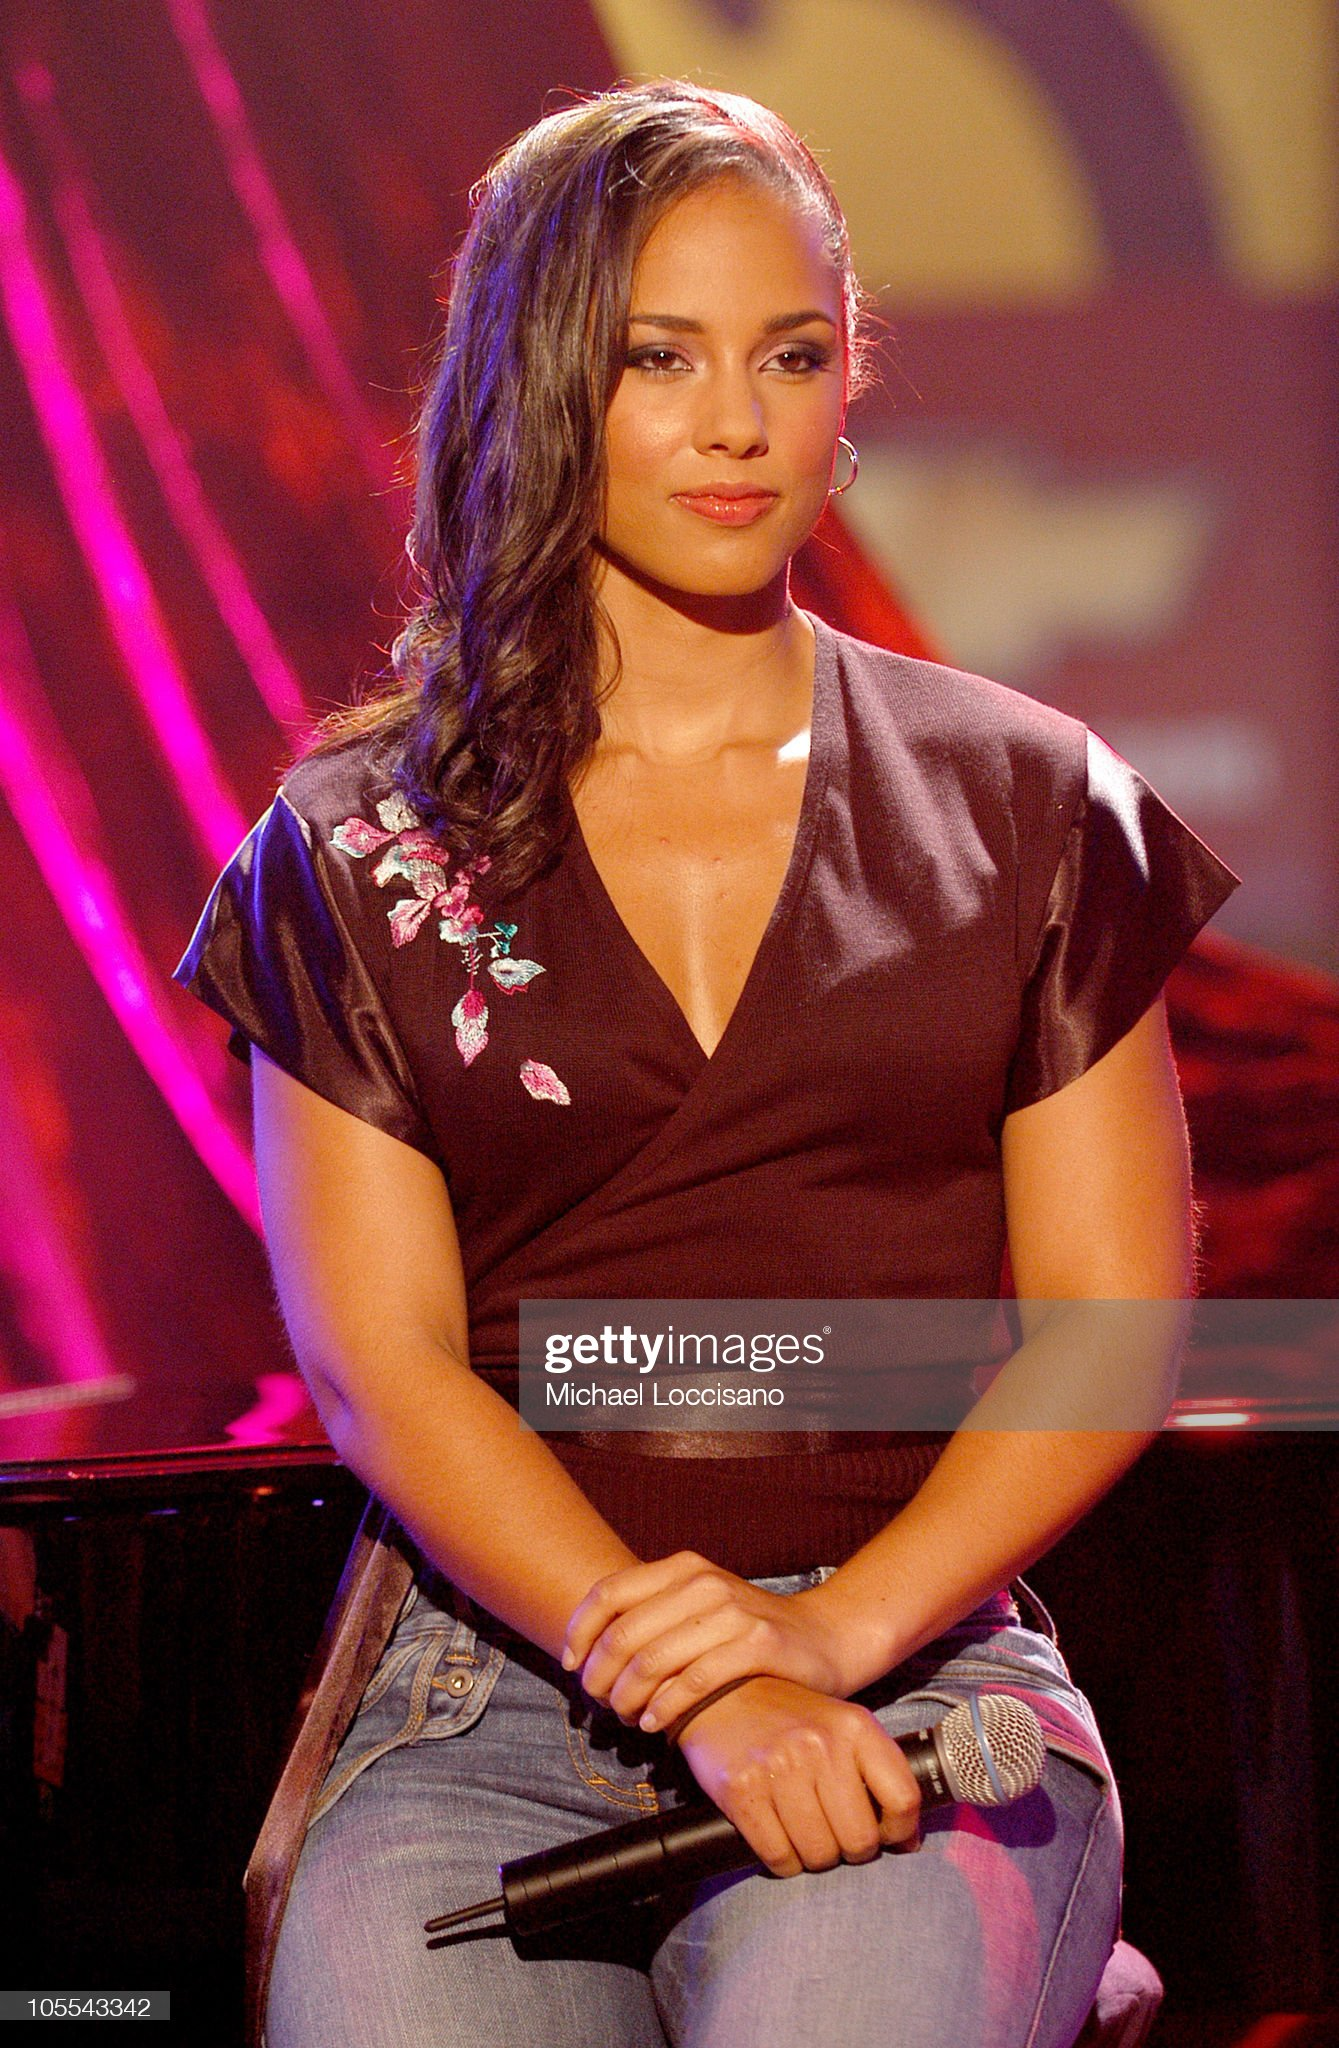 Top 80 Famosas Foroalturas - Página 2 Alicia-keys-during-react-now-music-relief-hurricane-relief-benefit-picture-id105543342?s=2048x2048